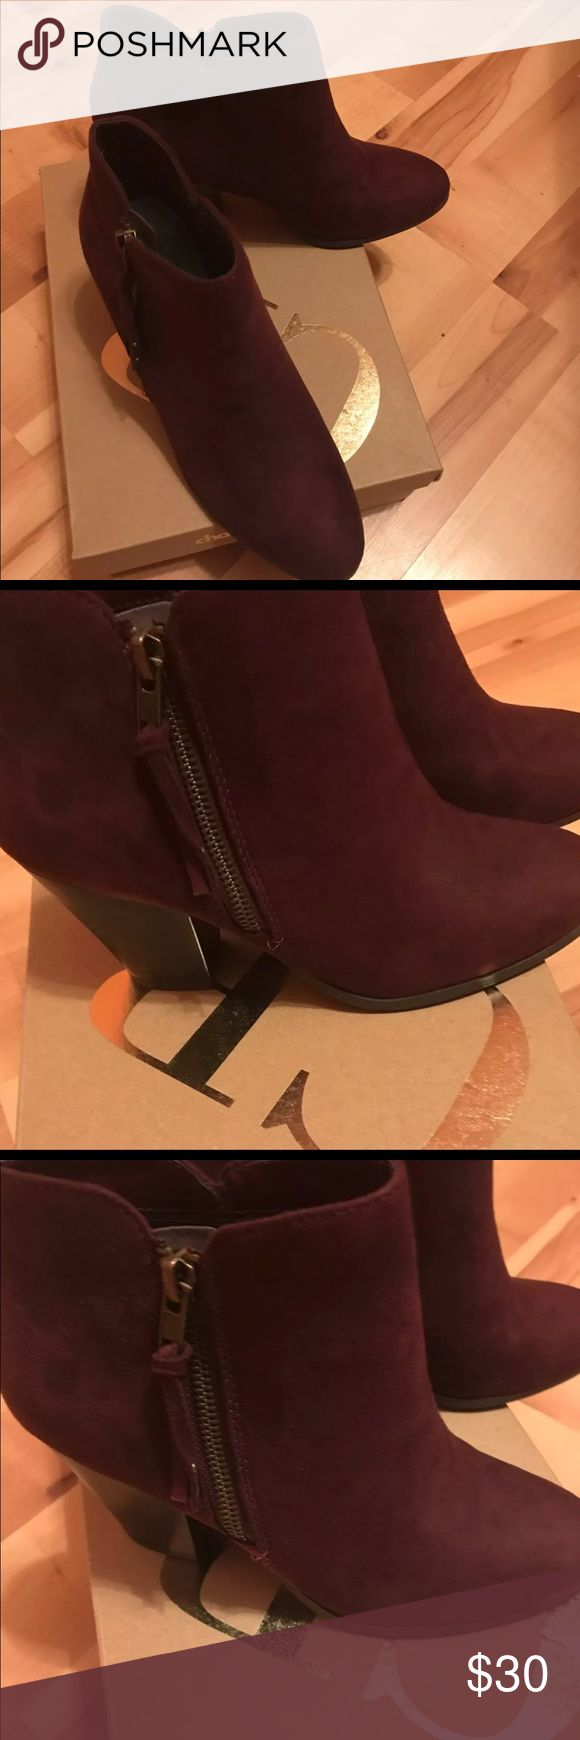 Charlotte Russe boots, never been worn! Charlotte Russe boots, never been worn , still in box! Size 7 , wine color .. I bought these thinking there were burgundy but they are more of a purple color. Offers will be considered Charlotte Russe Shoes Ankle Boots & Booties